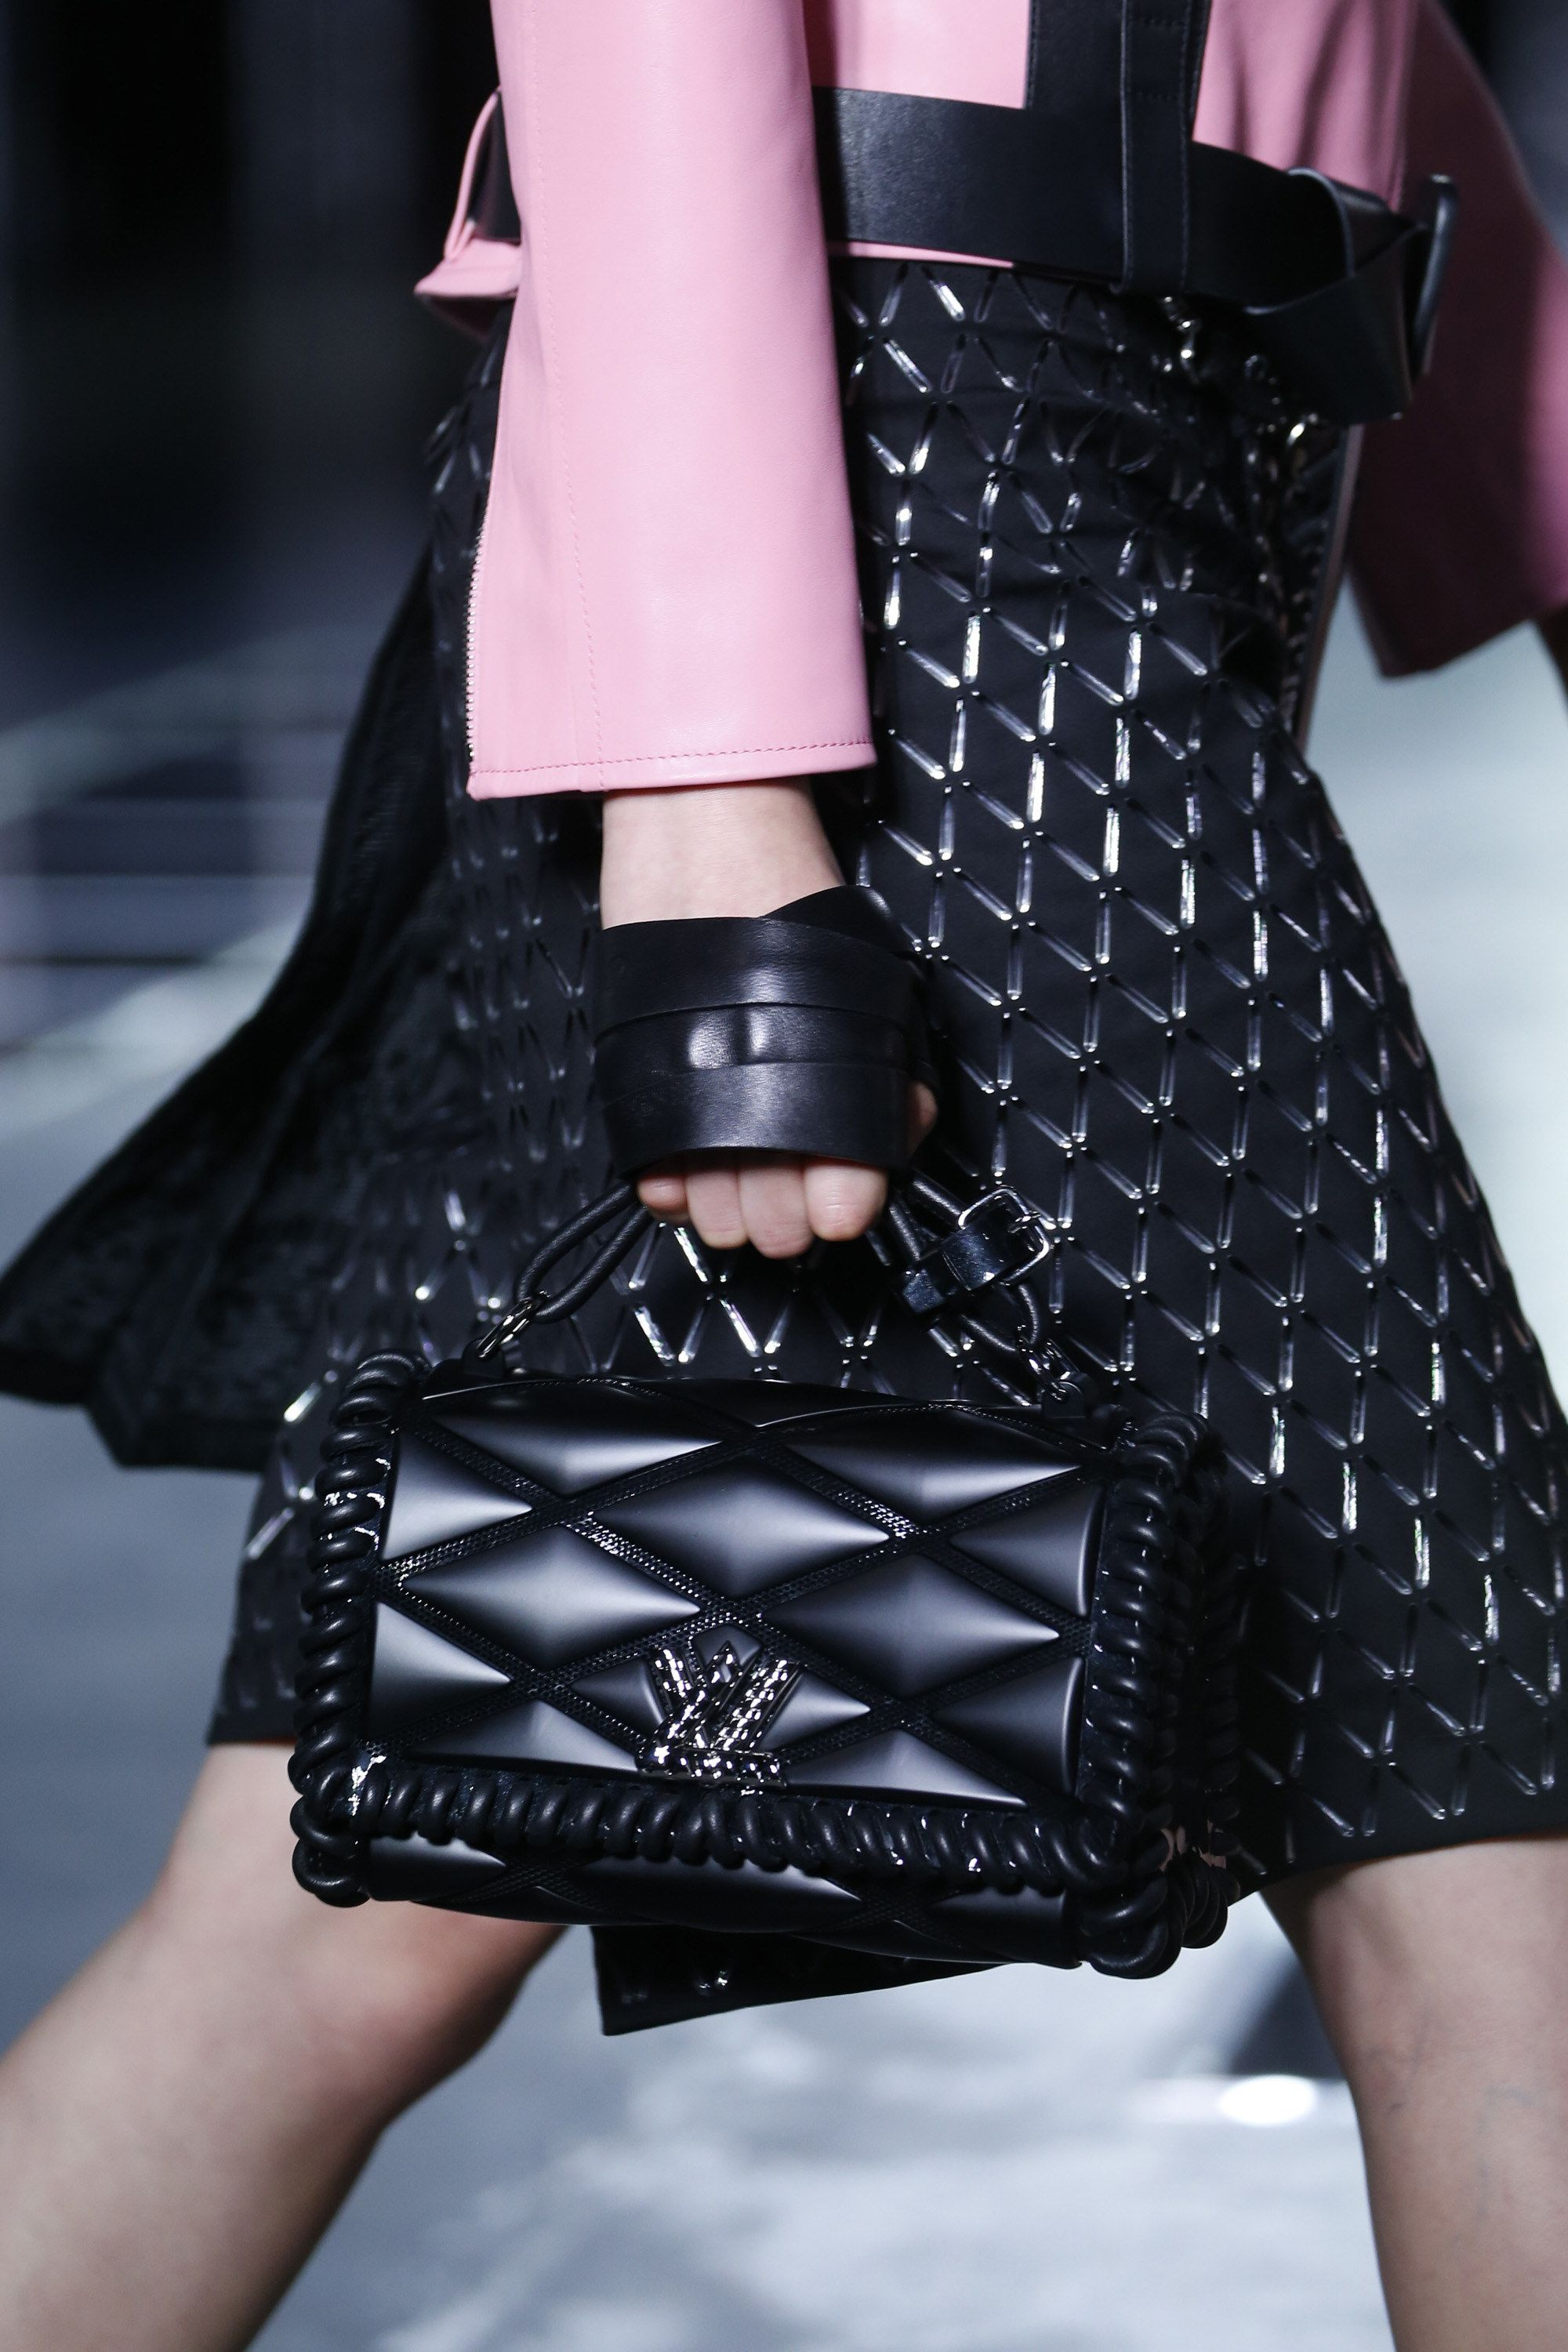 Vuitton Louis spring summer runway bag collection new photo